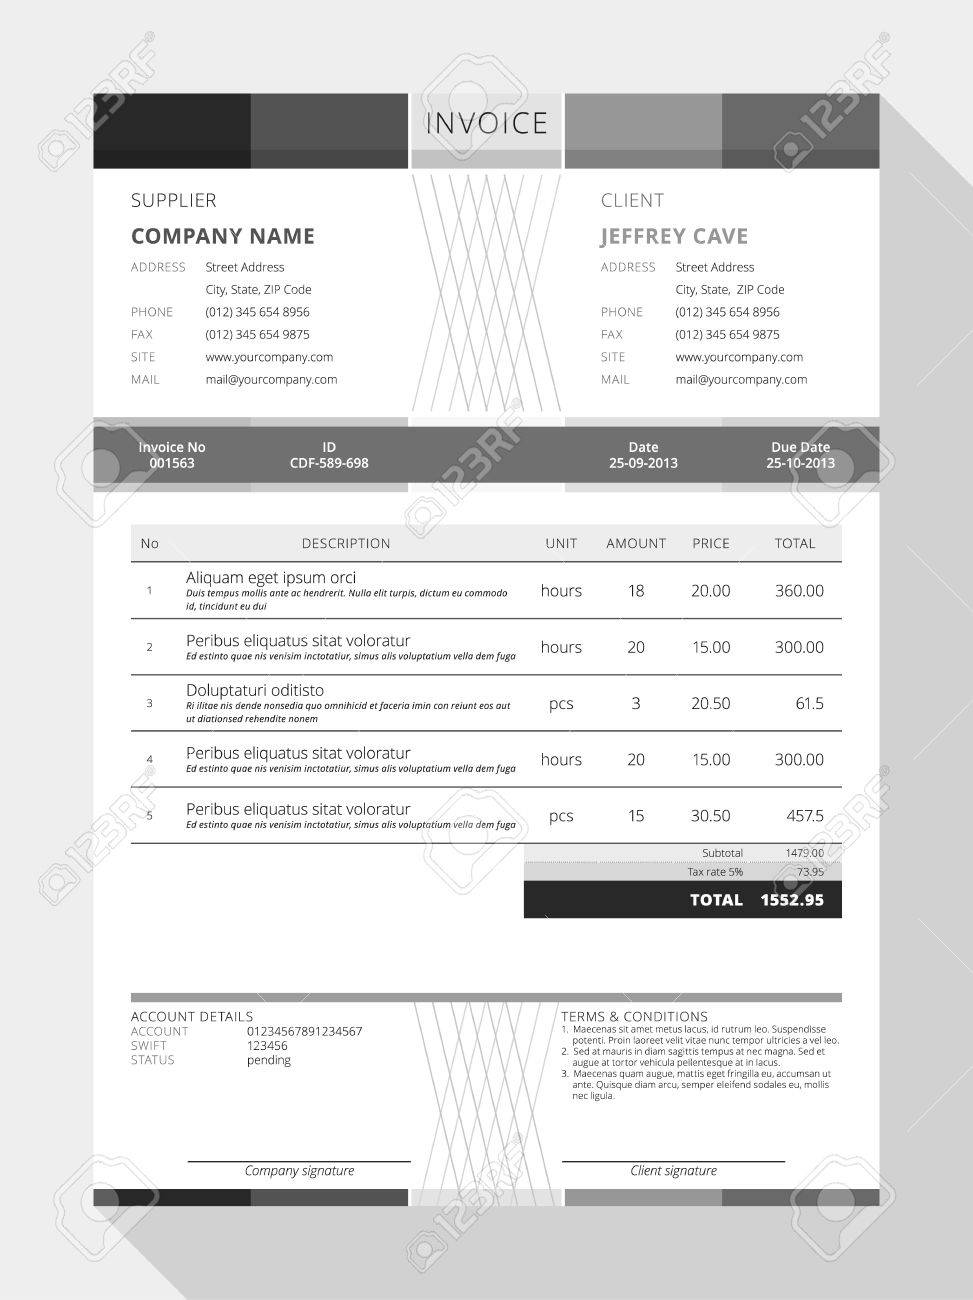 Picnictoimpeachus  Outstanding Design An Invoice  Professional Graphic Design Invoice  With Interesting Vector Customizable Invoice Form Template Design Vector   Design An Invoice With Divine Simple Invoice Generator Also Auto Shop Invoice Software In Addition Transportation Invoice And Invoice Template Printable As Well As Scan Invoices Into Quickbooks Additionally Contoh Invoice From Happytomco With Picnictoimpeachus  Interesting Design An Invoice  Professional Graphic Design Invoice  With Divine Vector Customizable Invoice Form Template Design Vector   Design An Invoice And Outstanding Simple Invoice Generator Also Auto Shop Invoice Software In Addition Transportation Invoice From Happytomco